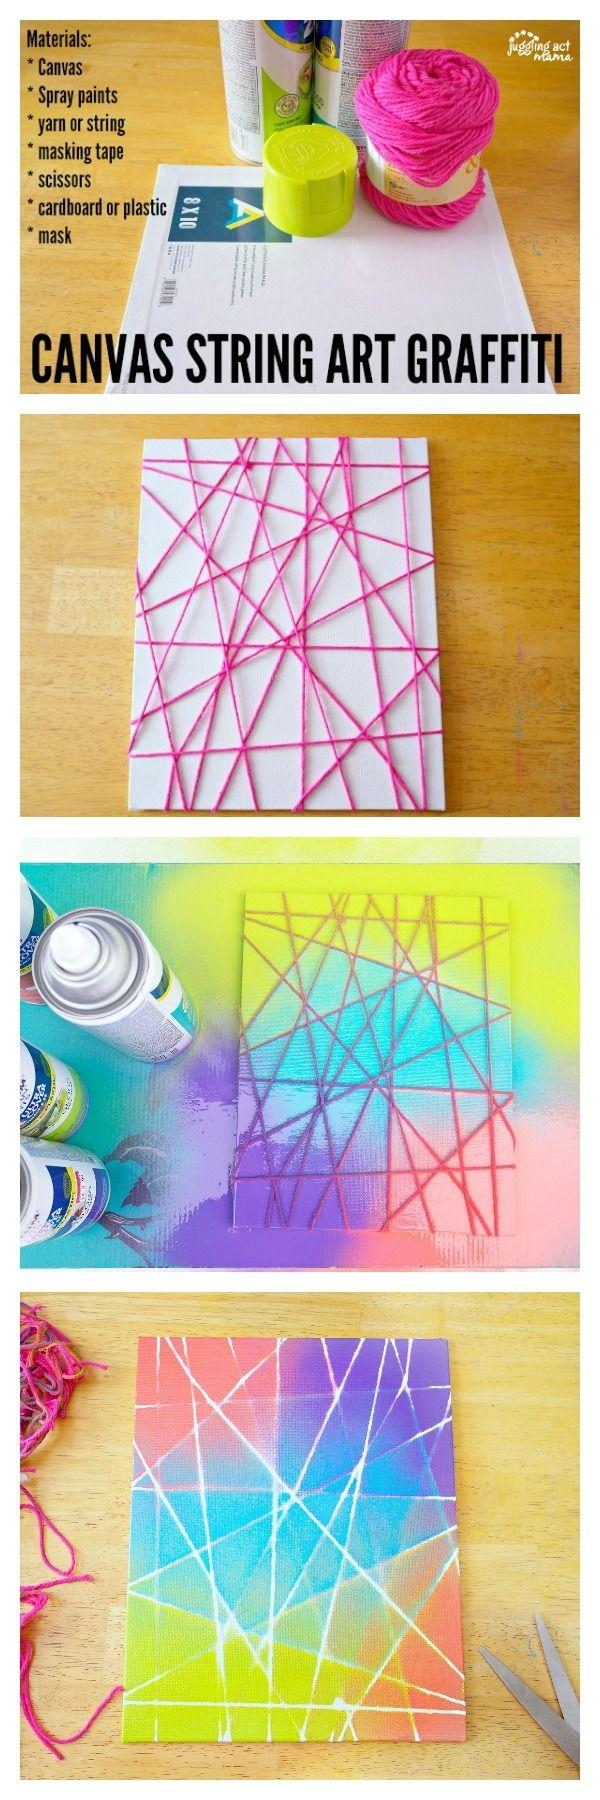 Best 25+ Canvas Crafts Ideas Only On Pinterest | Drawing Room With Diy Pinterest Canvas Art (View 12 of 20)